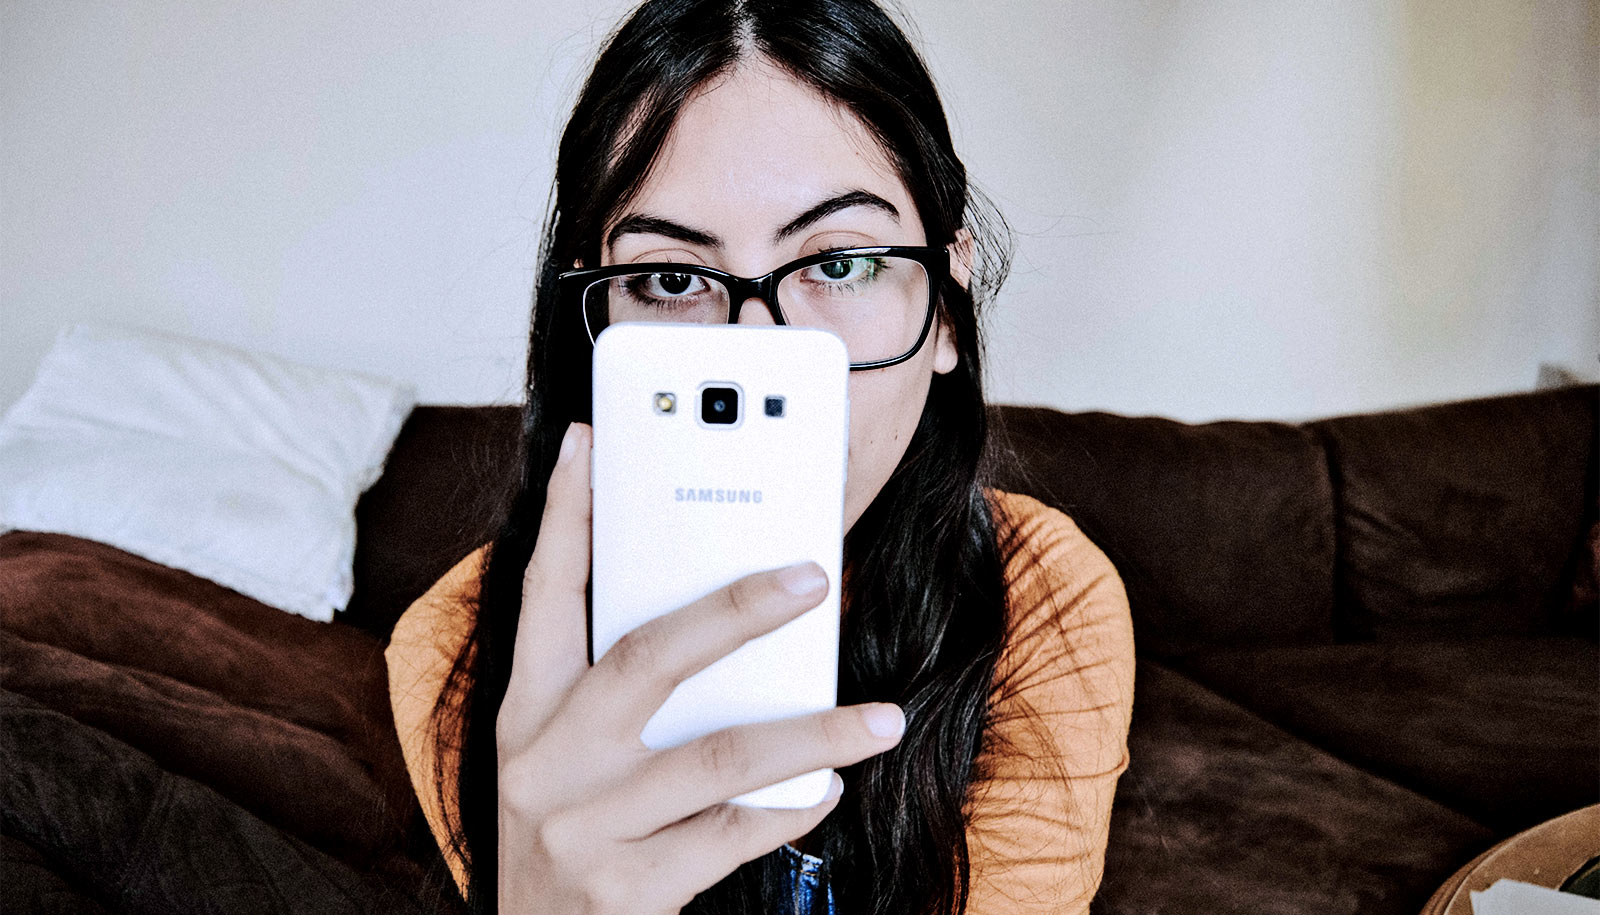 Young women's reasons for sexting aren't clear cut